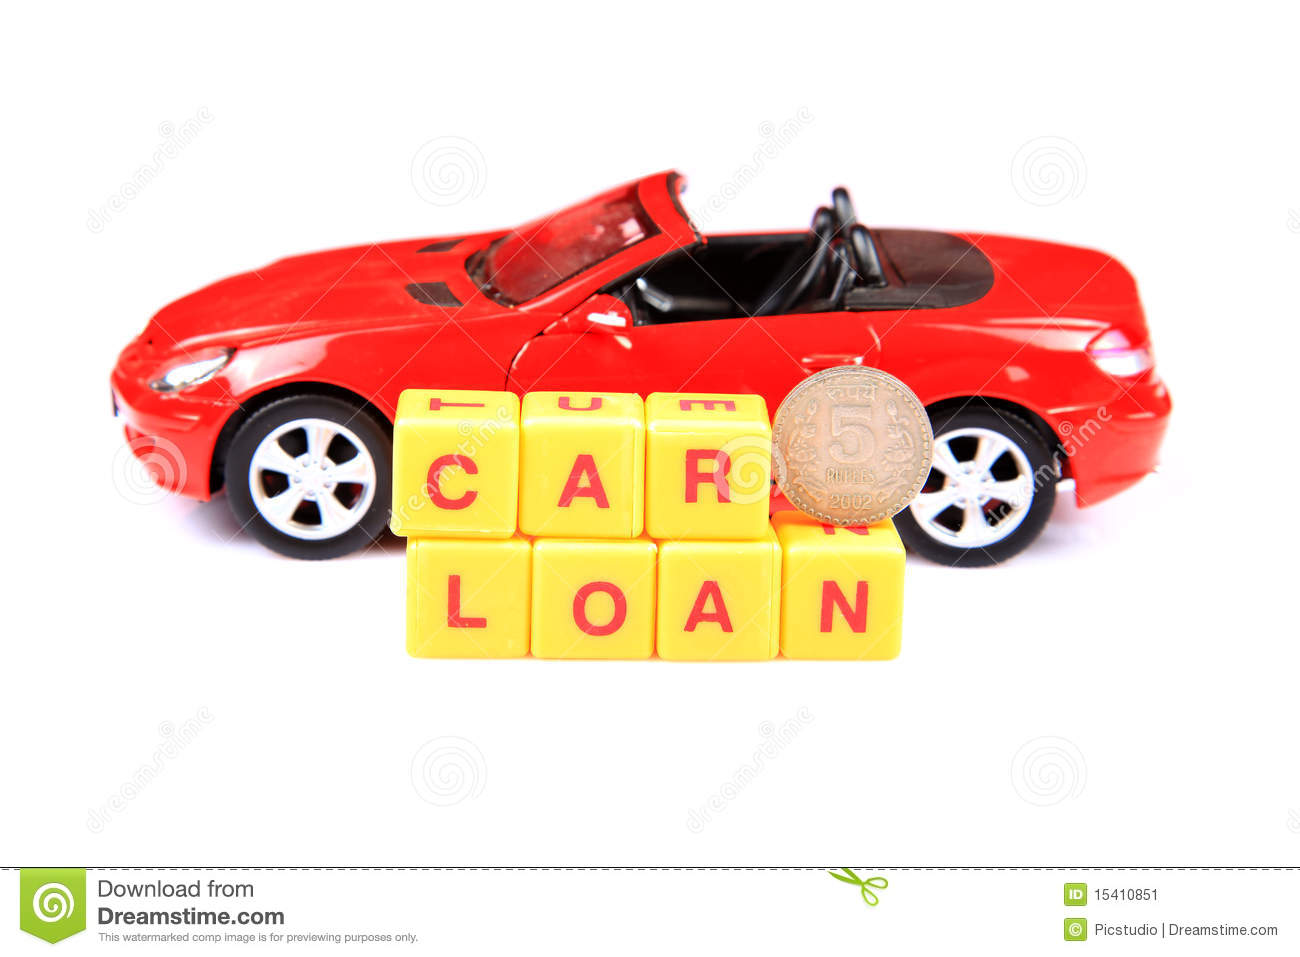 Concept image of car loan with red background.